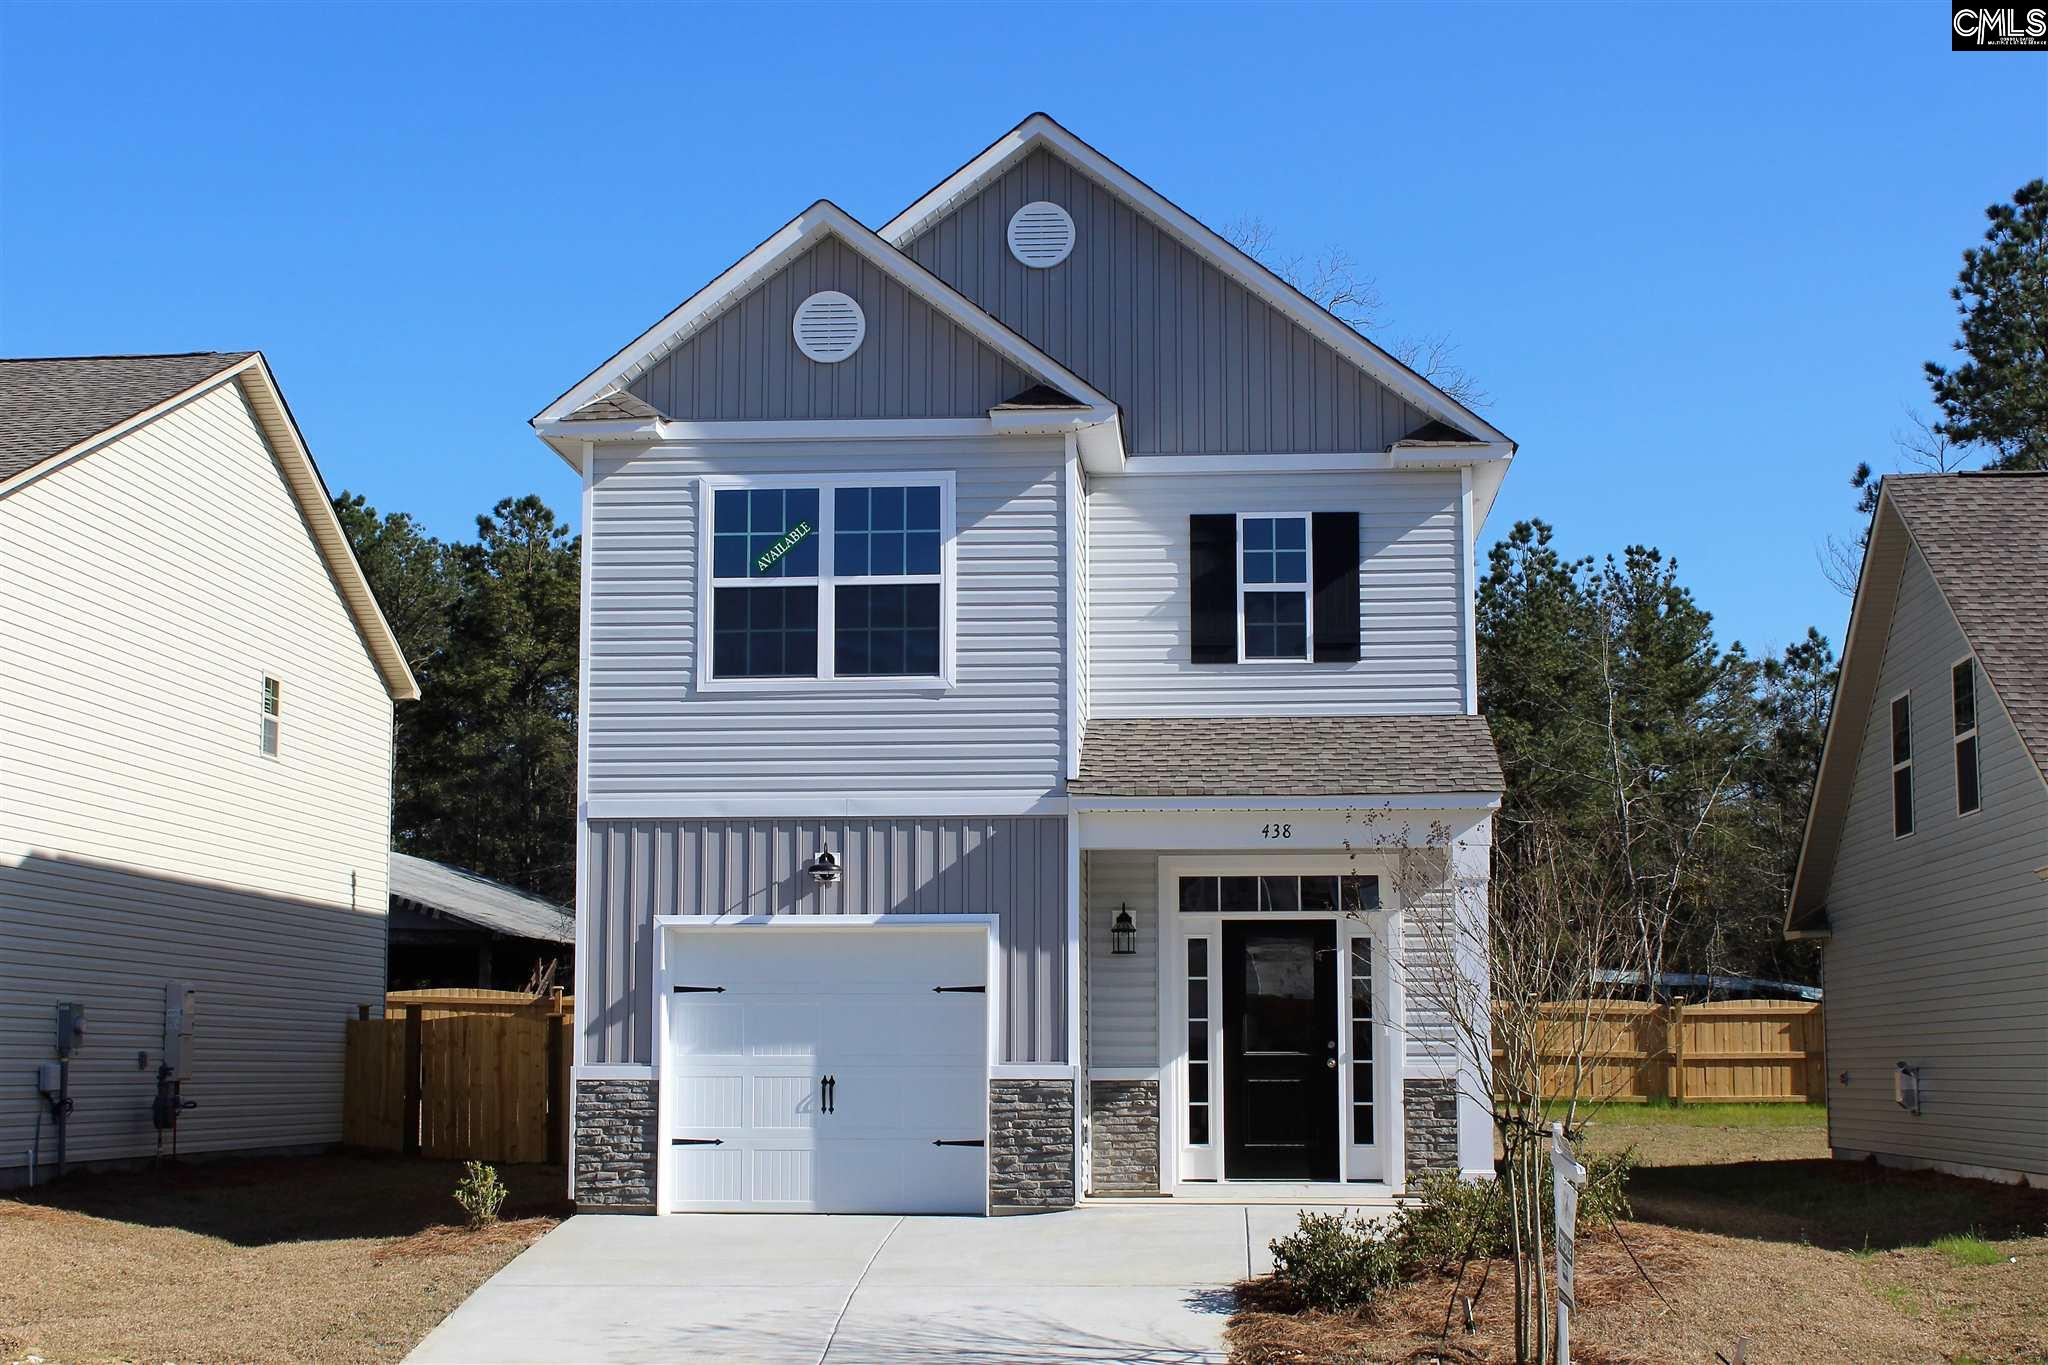 438 Fairford #79 Blythewood, SC 29016